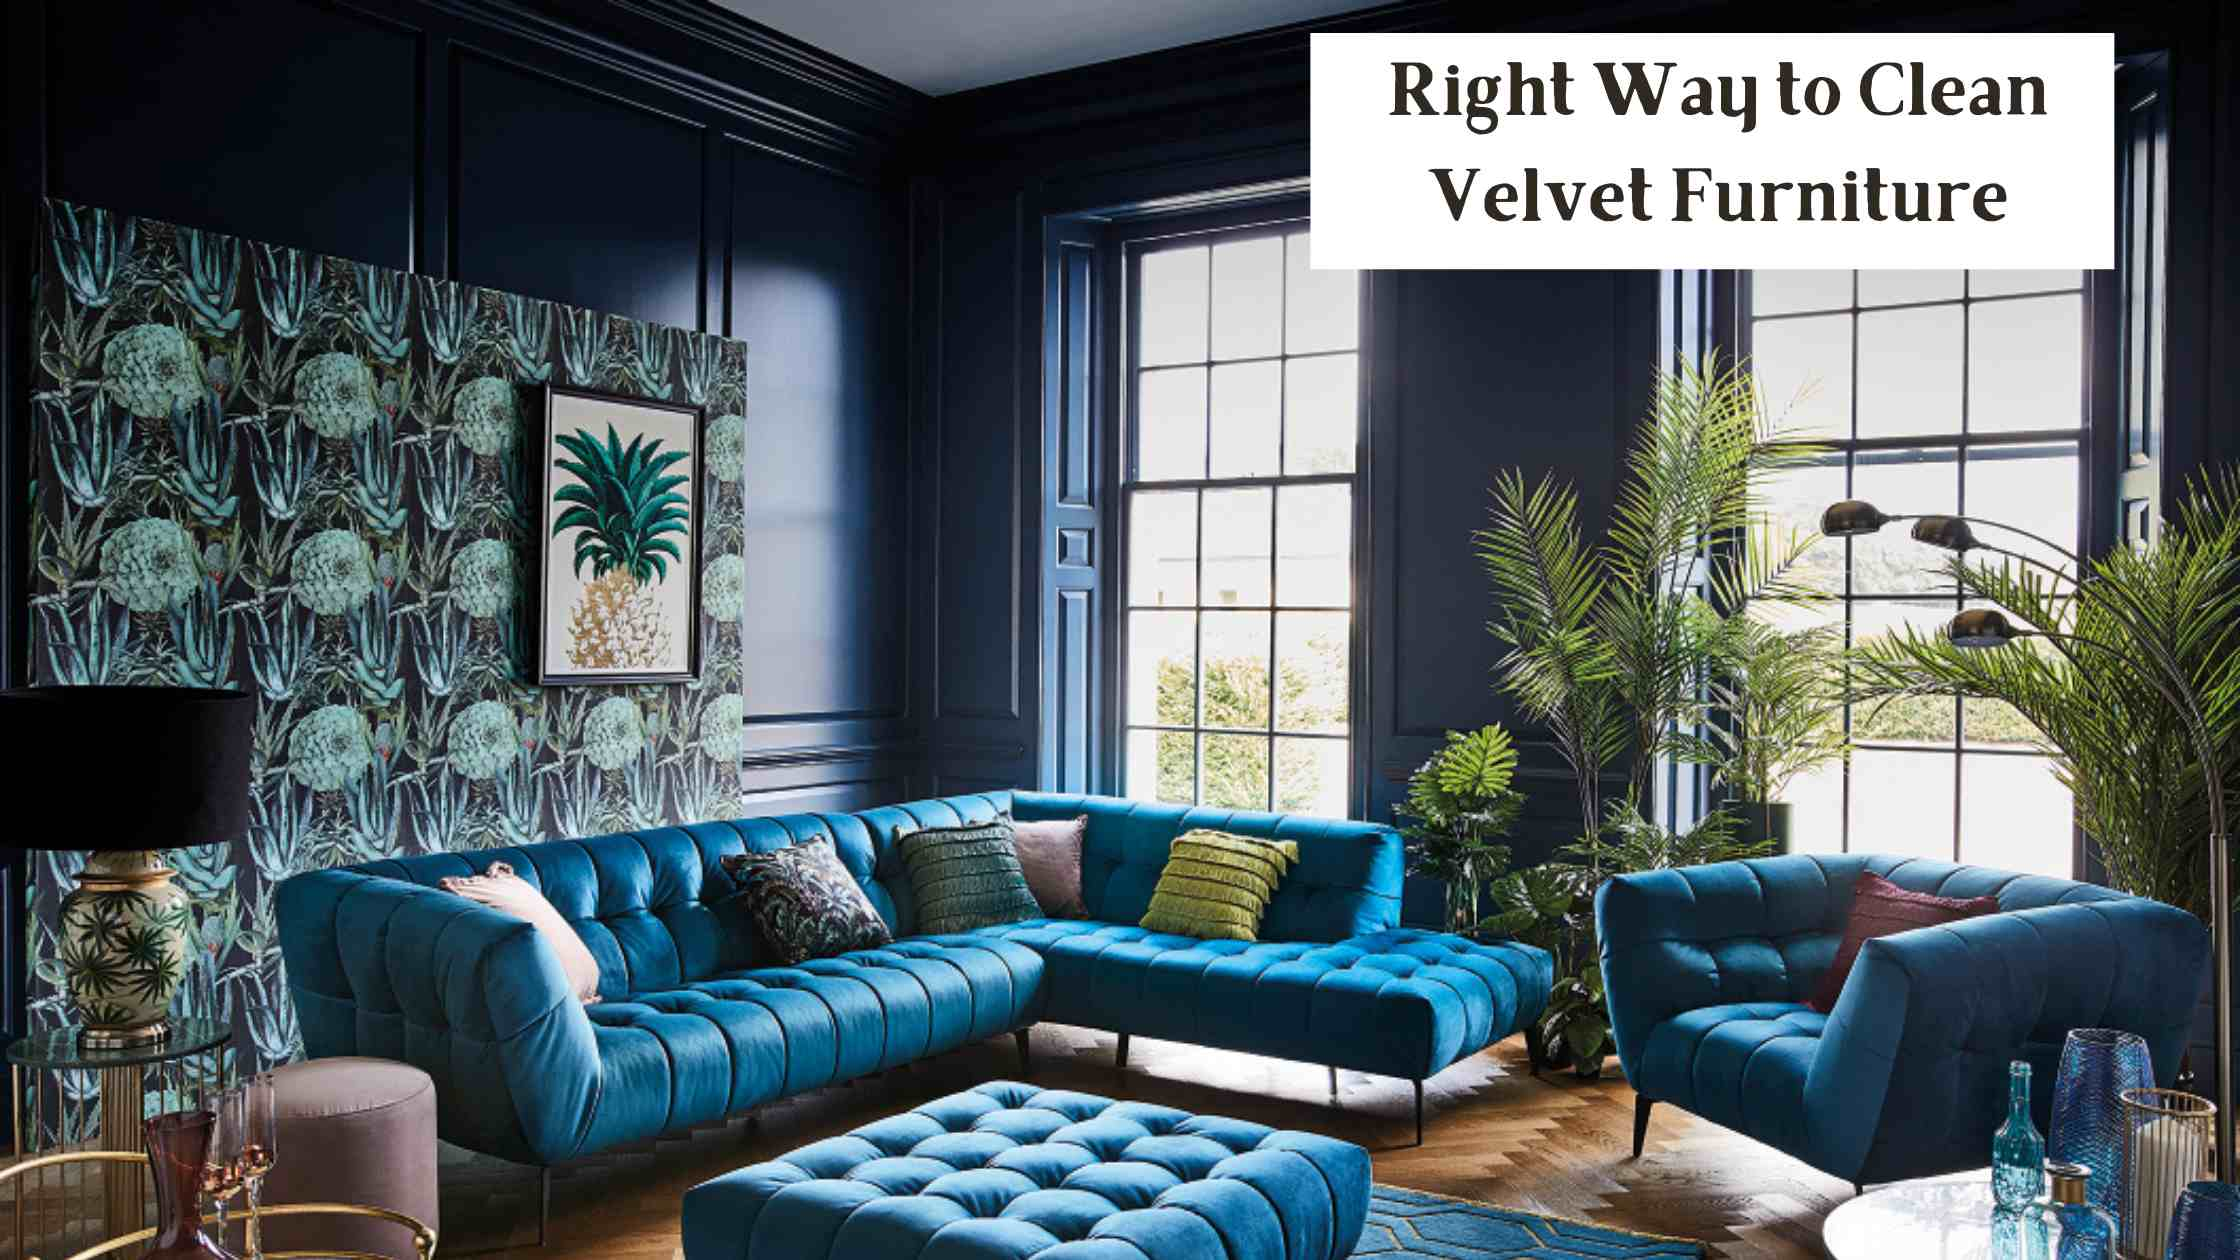 Right Way to Clean Velvet Furniture